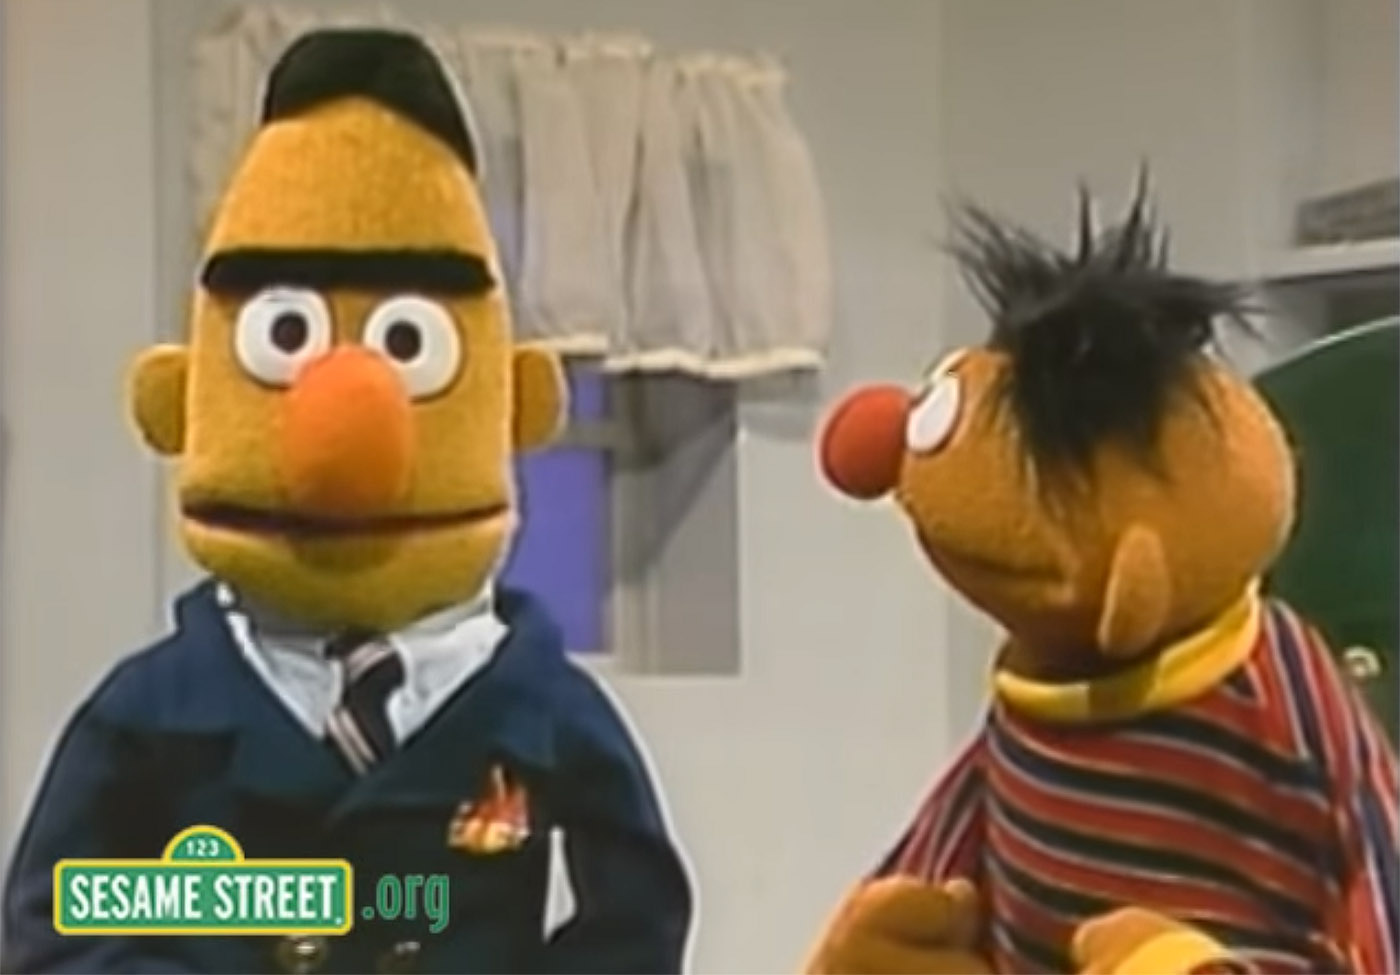 'B' is for burn rate: Sesame Street launches a venture fund